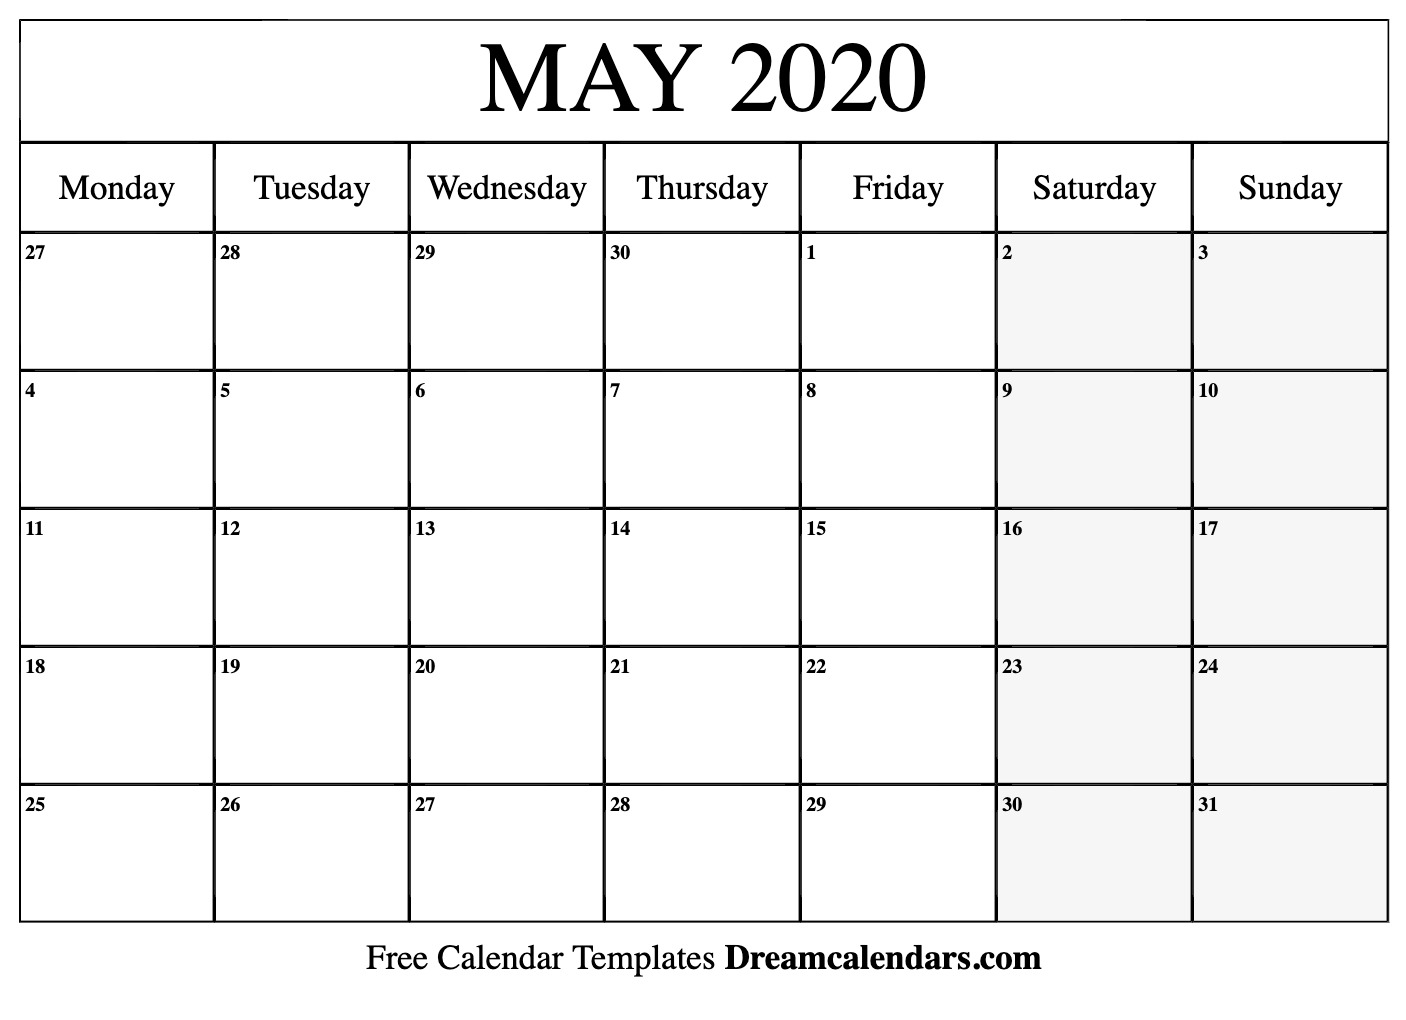 Calendar For 2020 May Printable May 2020 Calendar